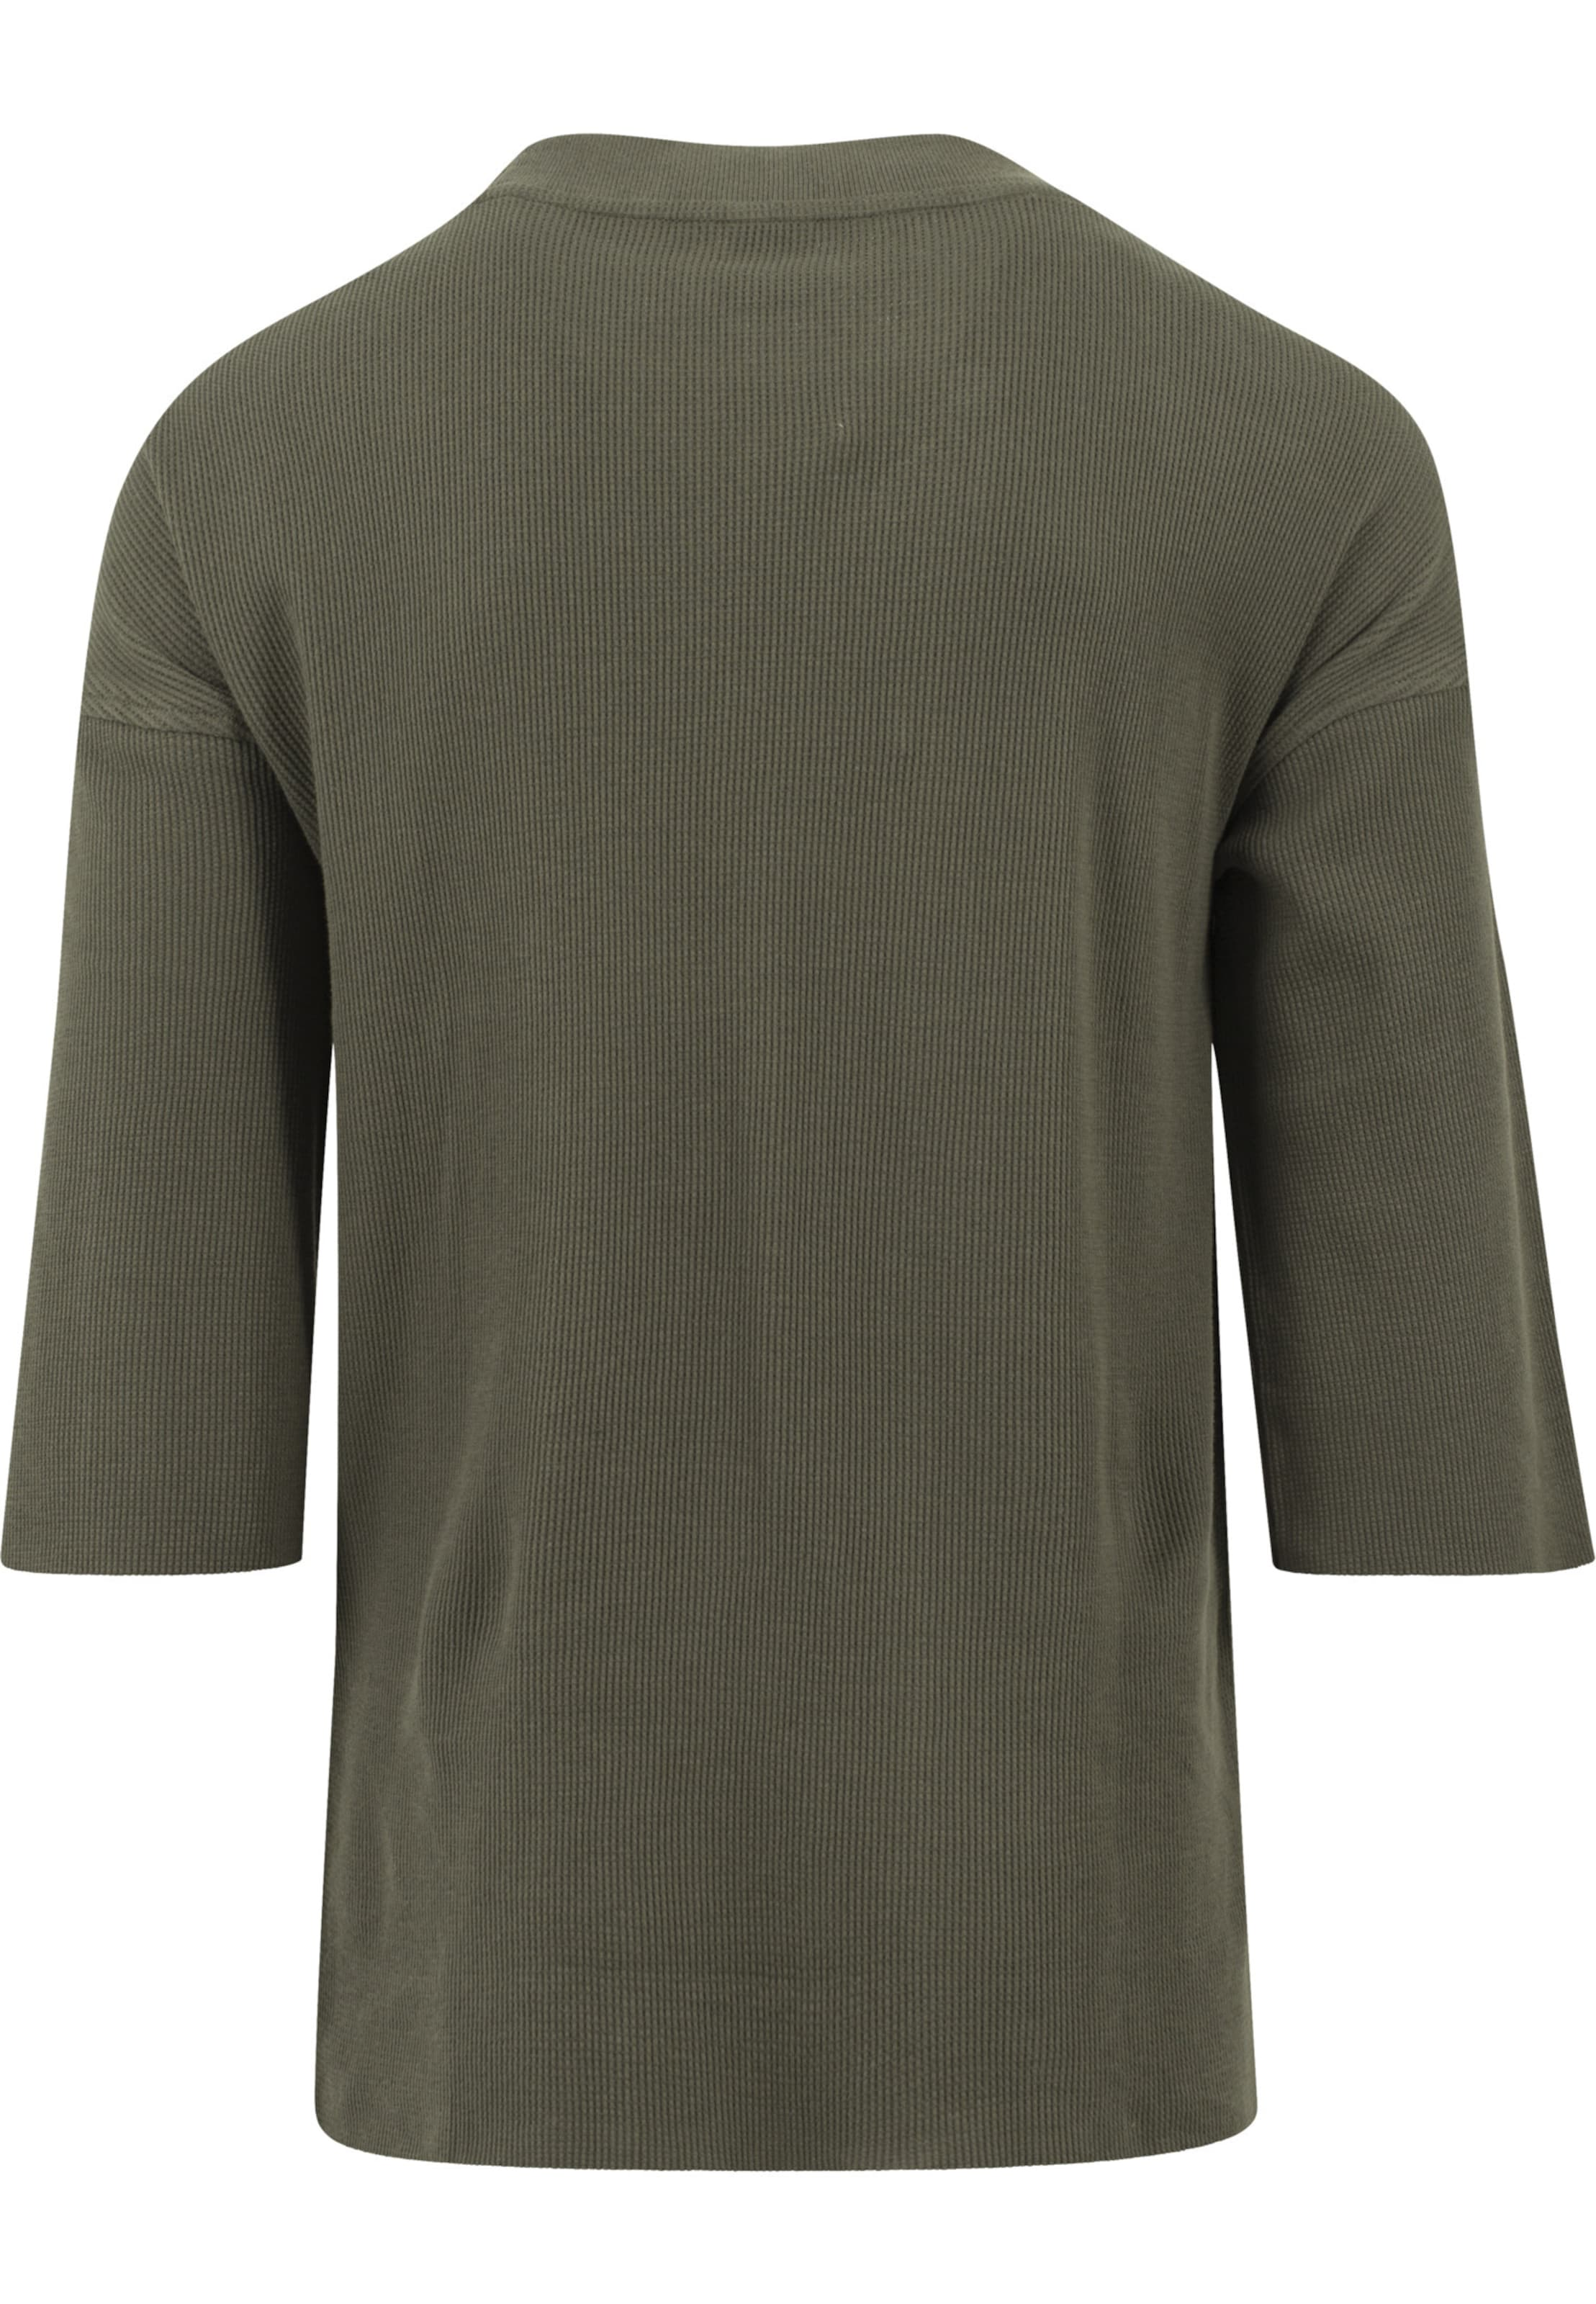 In Oliv Classics T Thermal Tee Boxy shirt Urban UzMVGLSpq